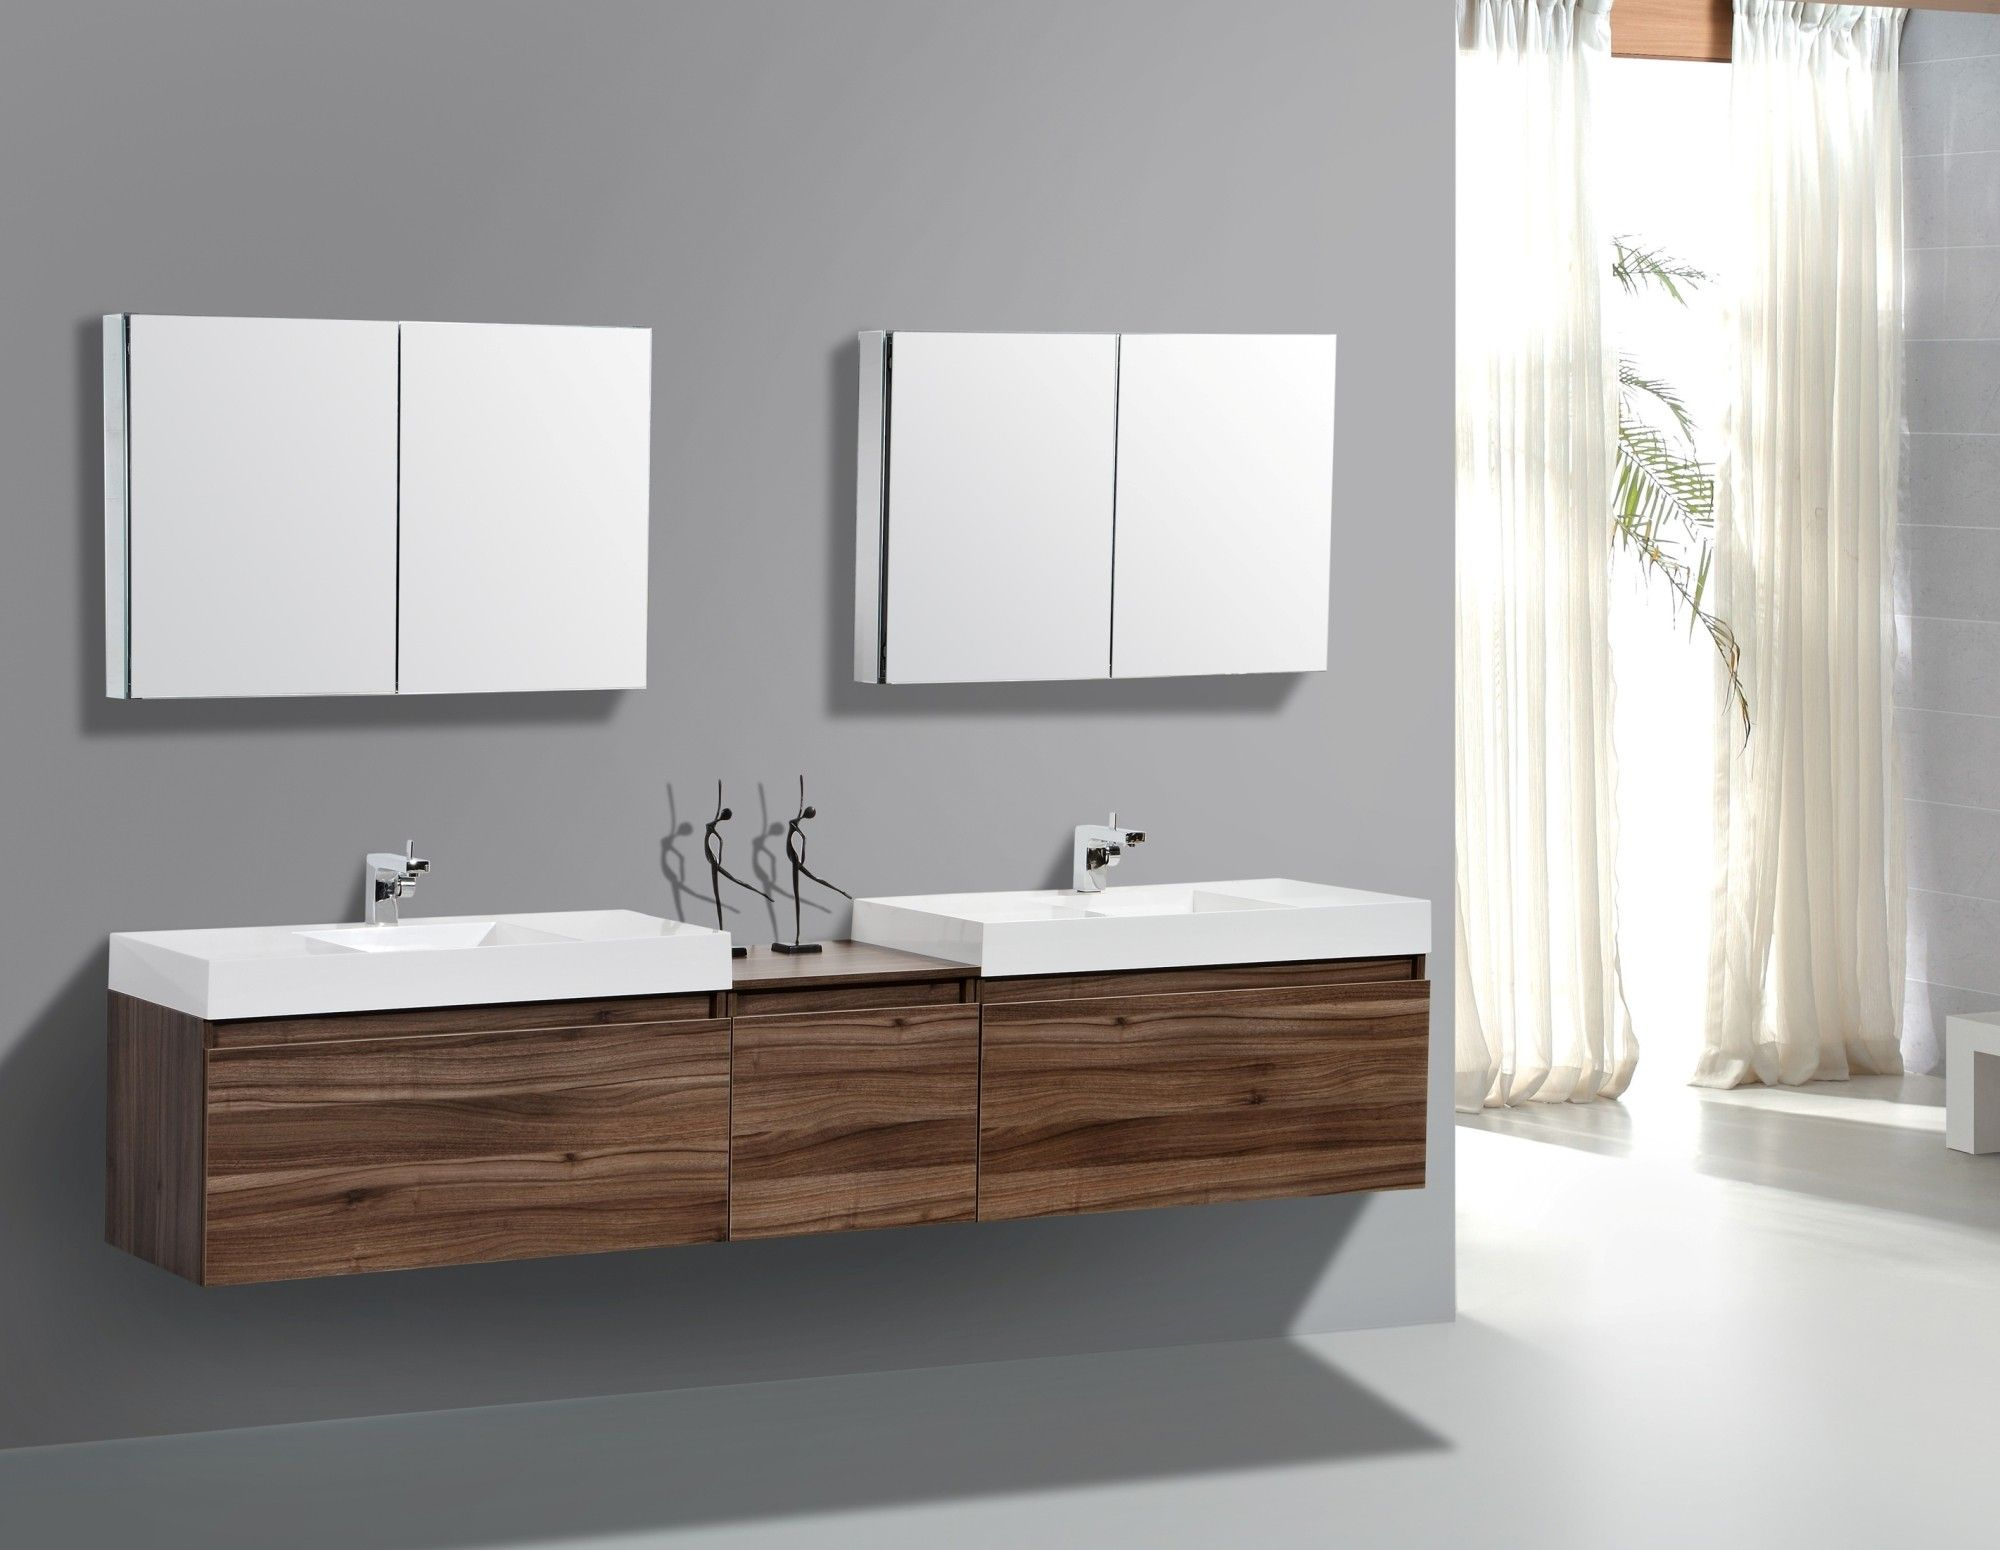 Sets bathroom vanity ari kitchen second - Best 25 Modern Bathroom Vanities Ideas On Pinterest Modern Bathrooms Modern City Bathrooms And Modern City Style Bathrooms